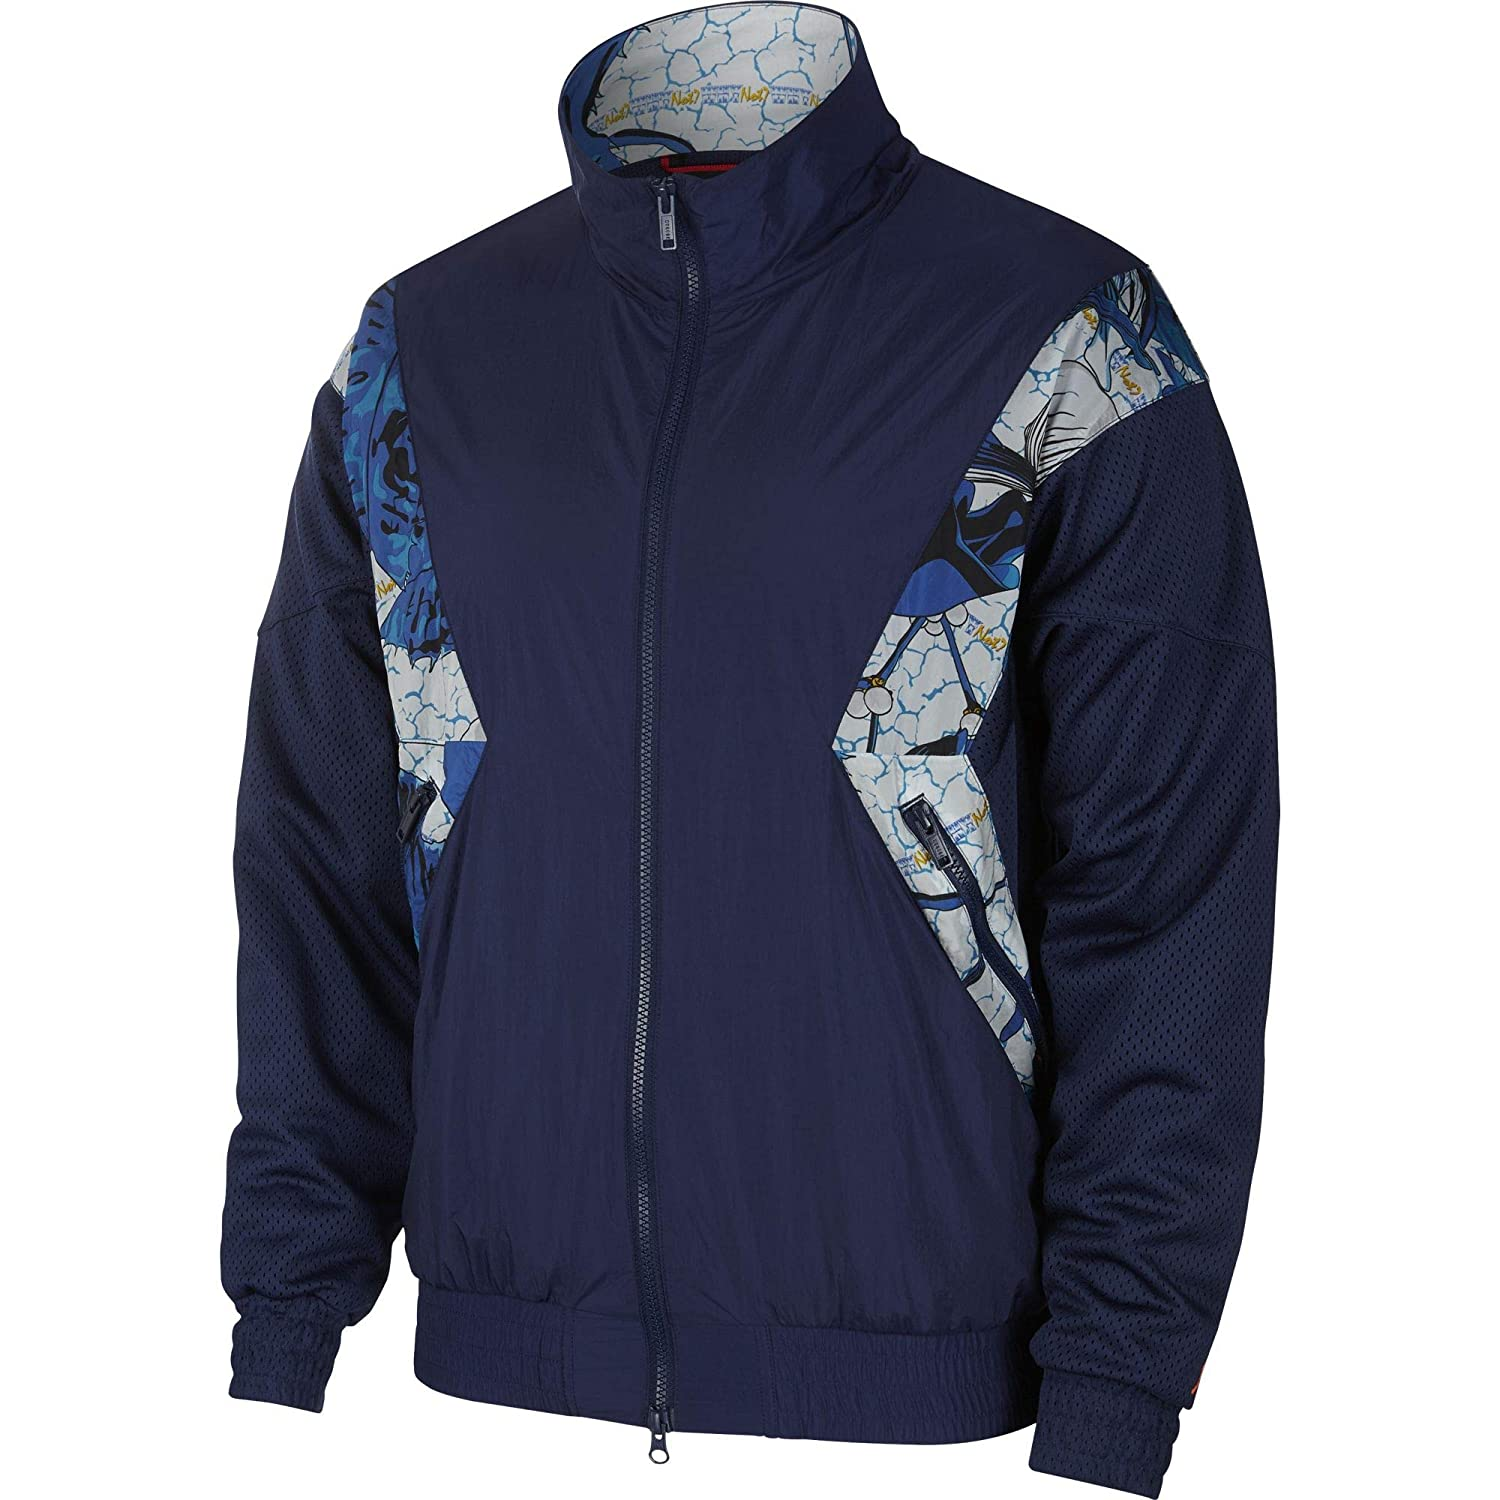 Nike Jordan X RW Flight Jkt 1 Chaqueta, Hombre: Amazon.es ...